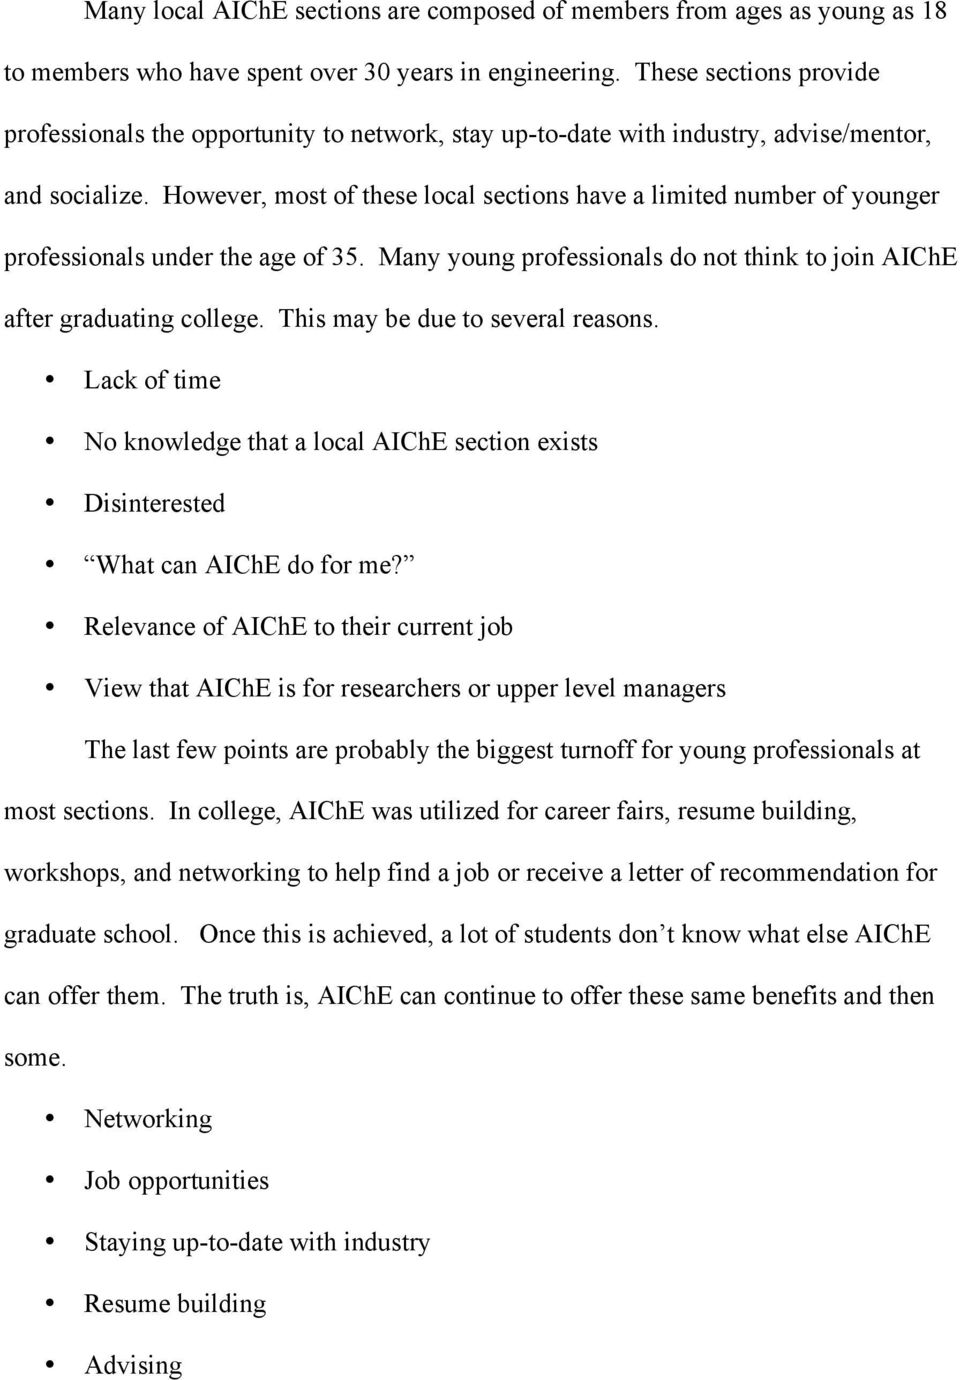 However, most of these local sections have a limited number of younger professionals under the age of 35. Many young professionals do not think to join AIChE after graduating college.